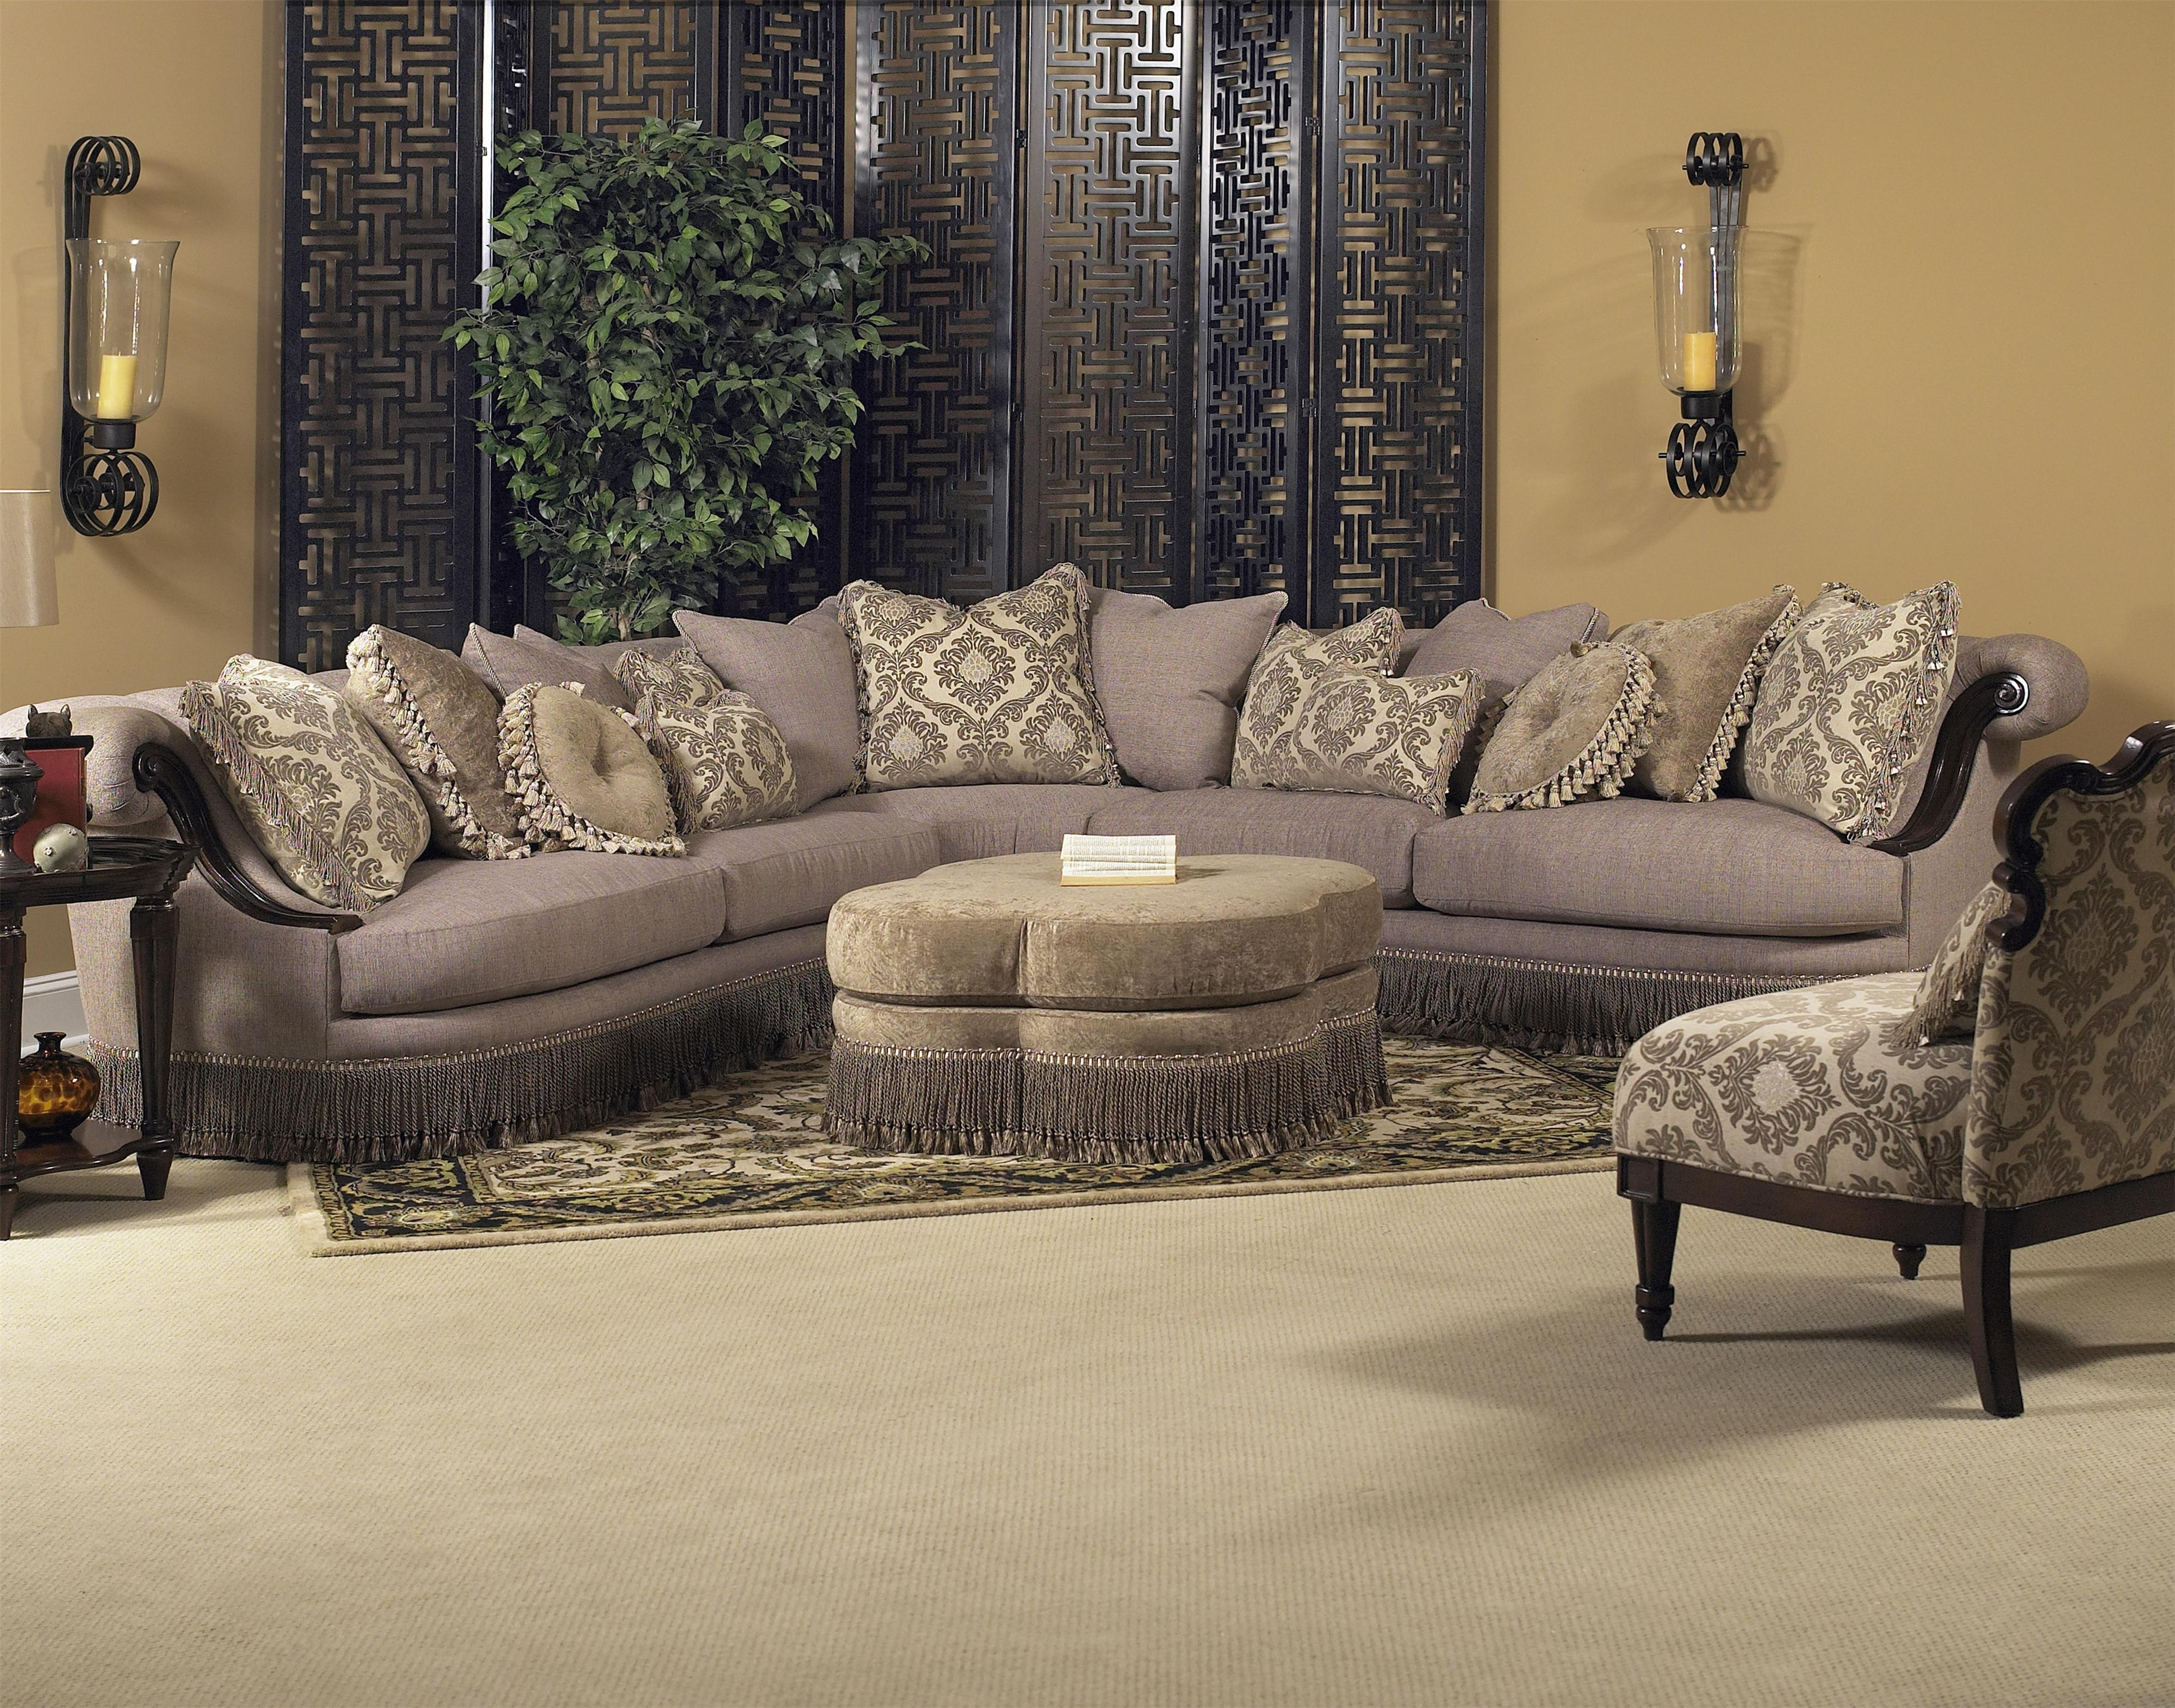 Classic Wellingsley Sectionalfairmont Designs Available At Royal Within Royal Furniture Sectional Sofas (View 2 of 10)